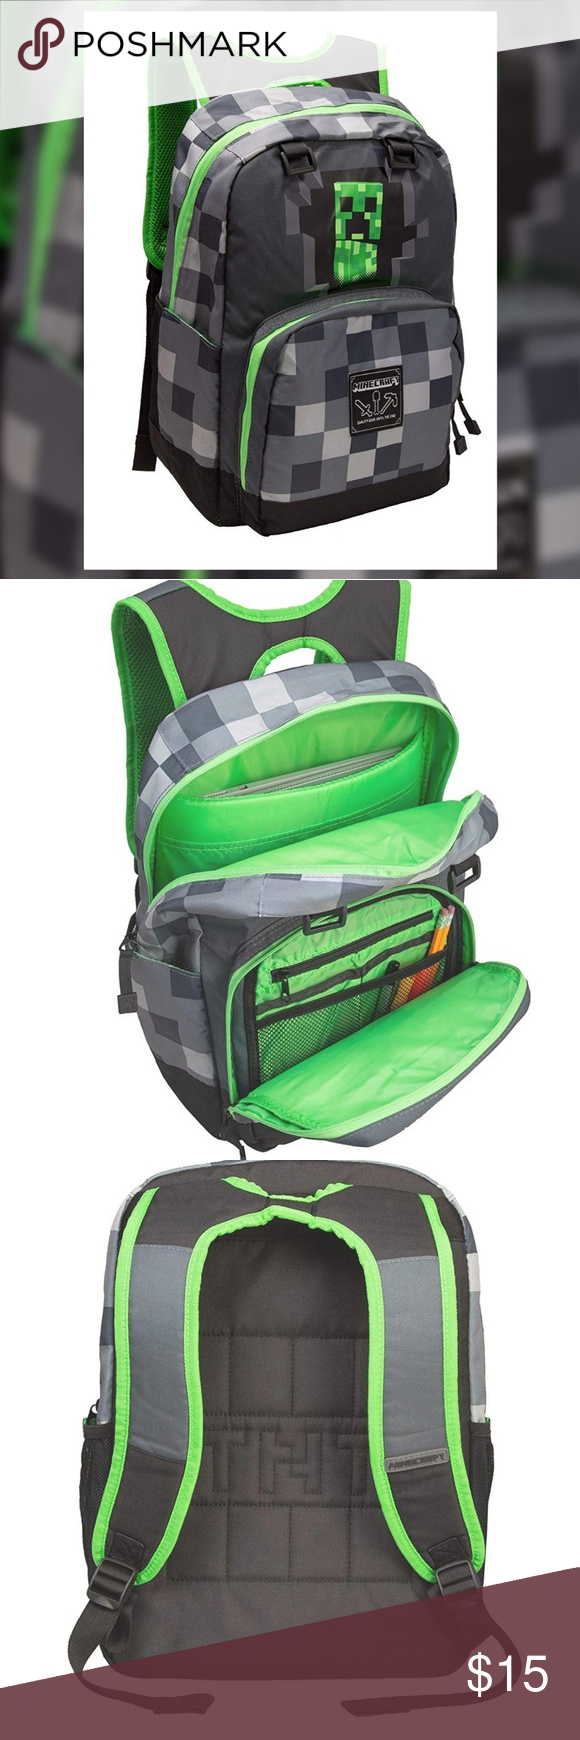 43da97e0af Minecraft Creeper paddle backpack This cool grey backpack is perfect for  the Minecraft fan. It